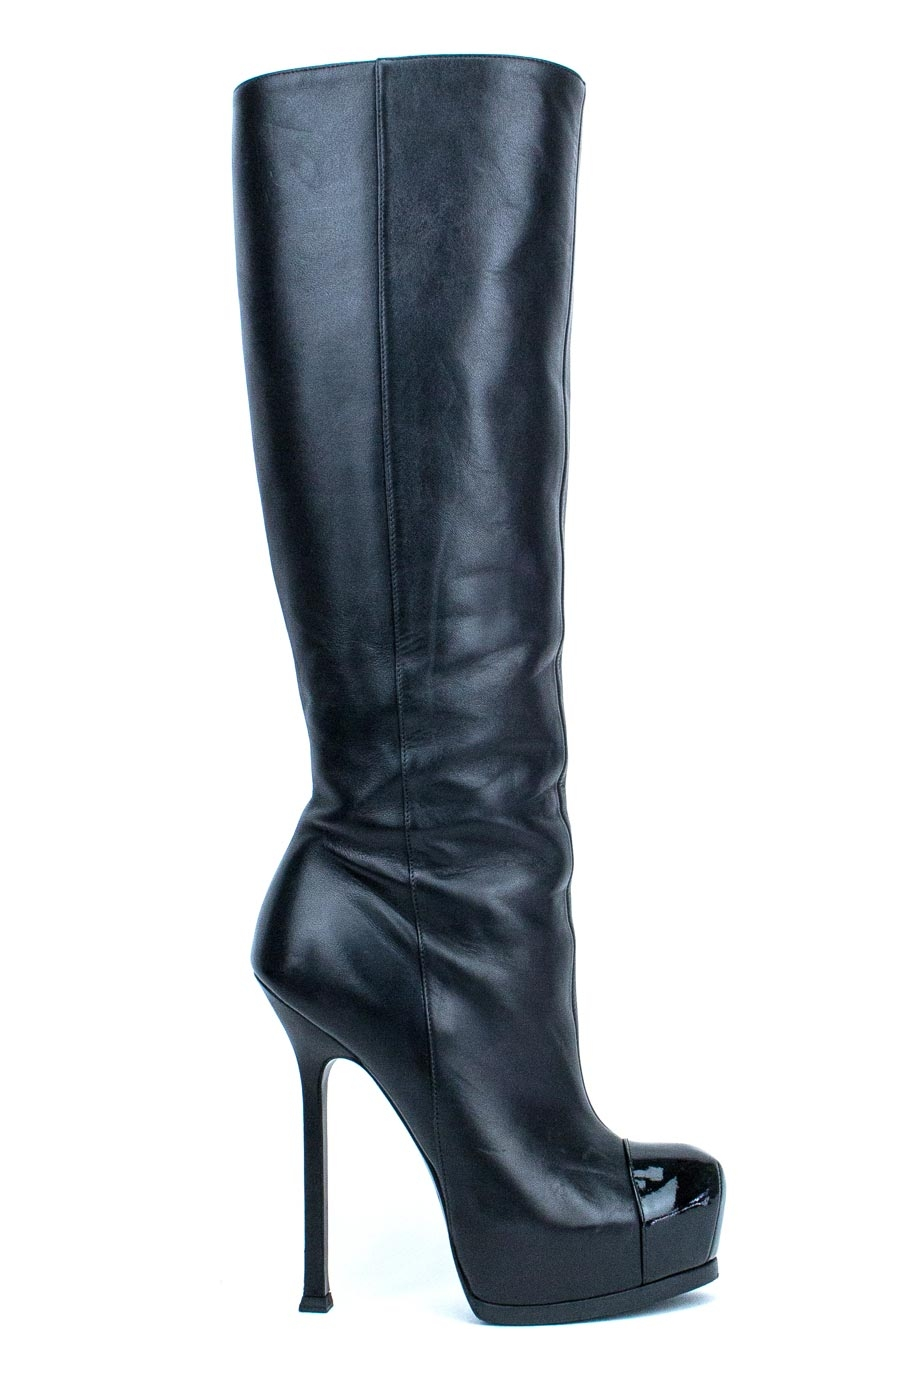 140930ecb85 ... patent Babel Vitello Flat Knee High boots Size 36.5 6 Yves Saint Laurent  ...